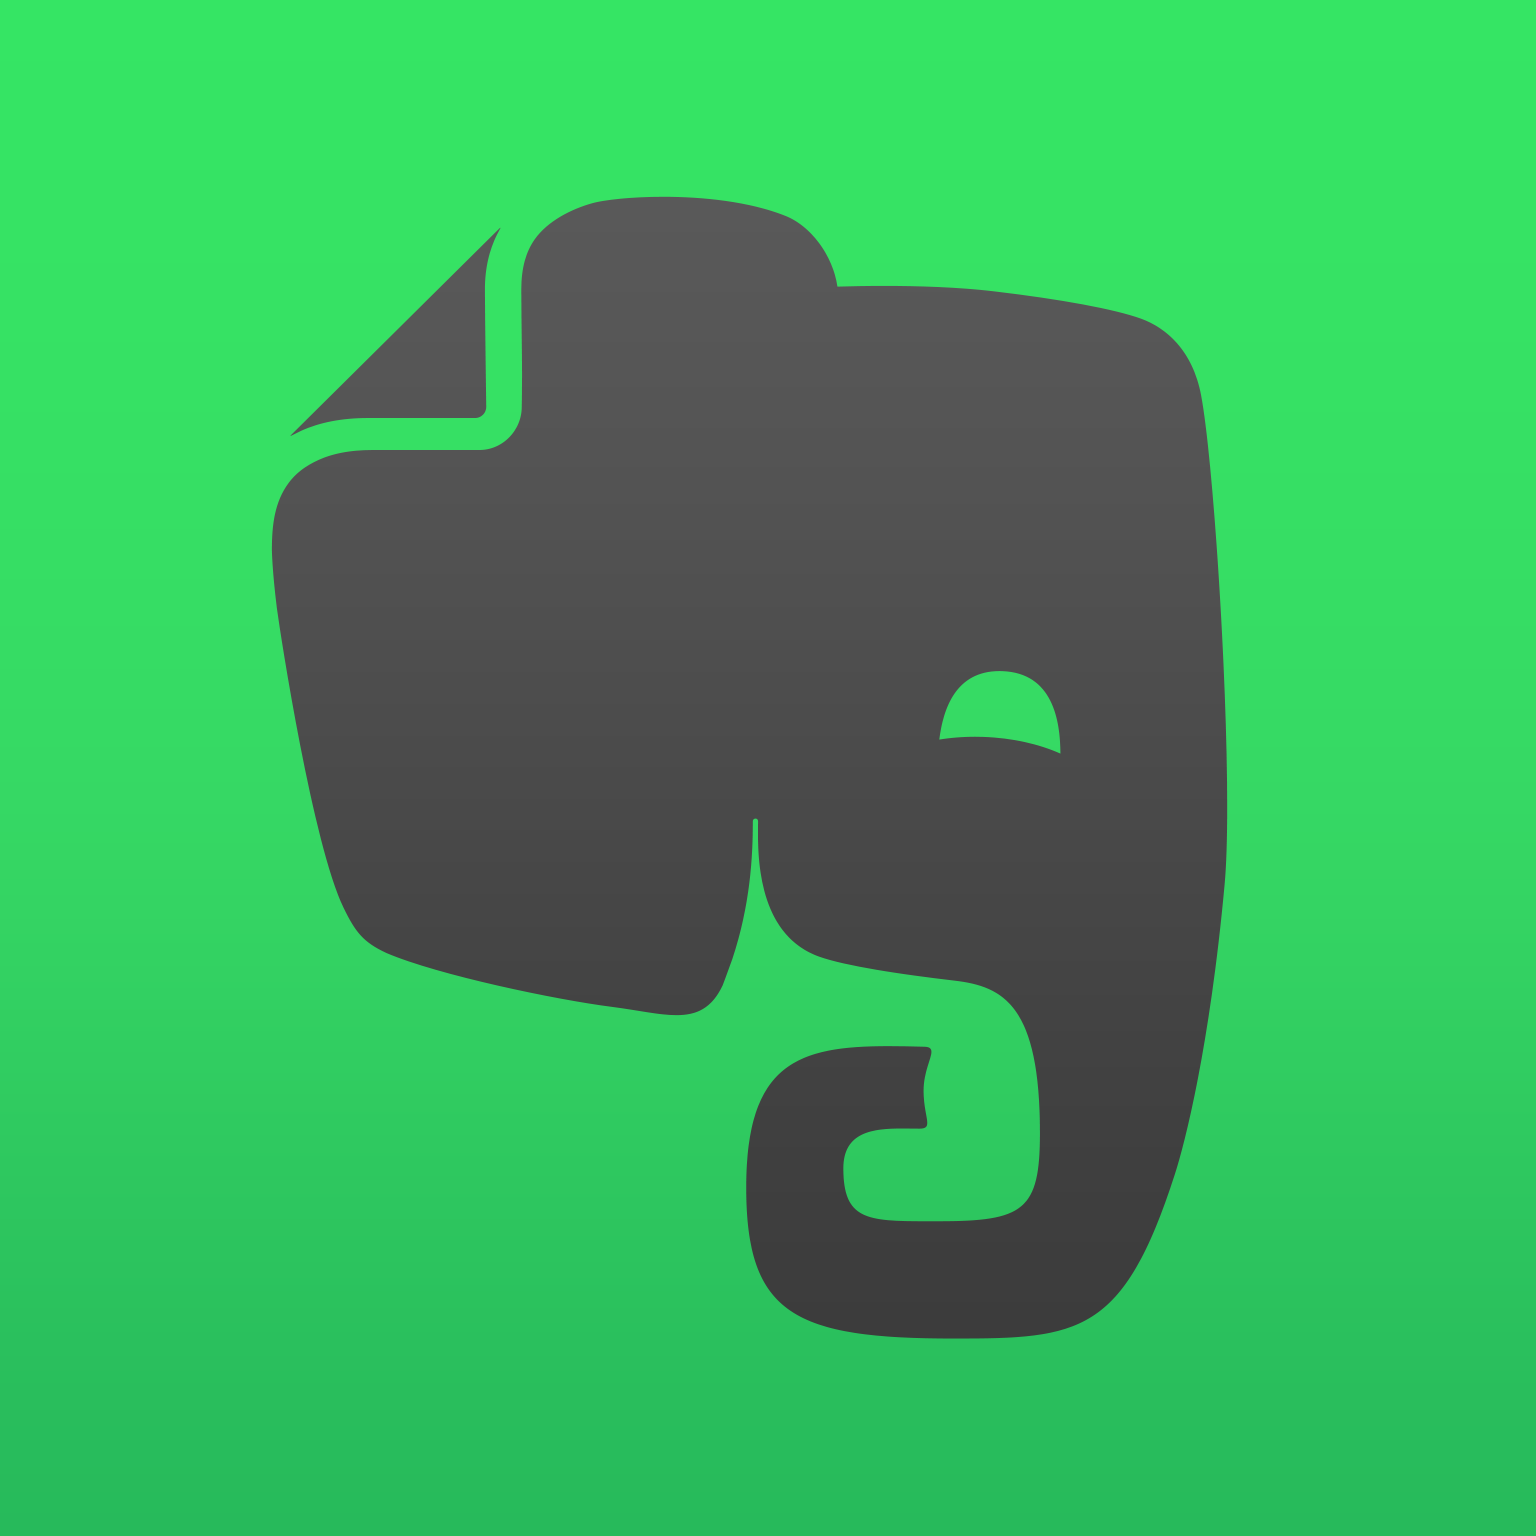 Evernote Business Makes The Ideas, Research And Expertise